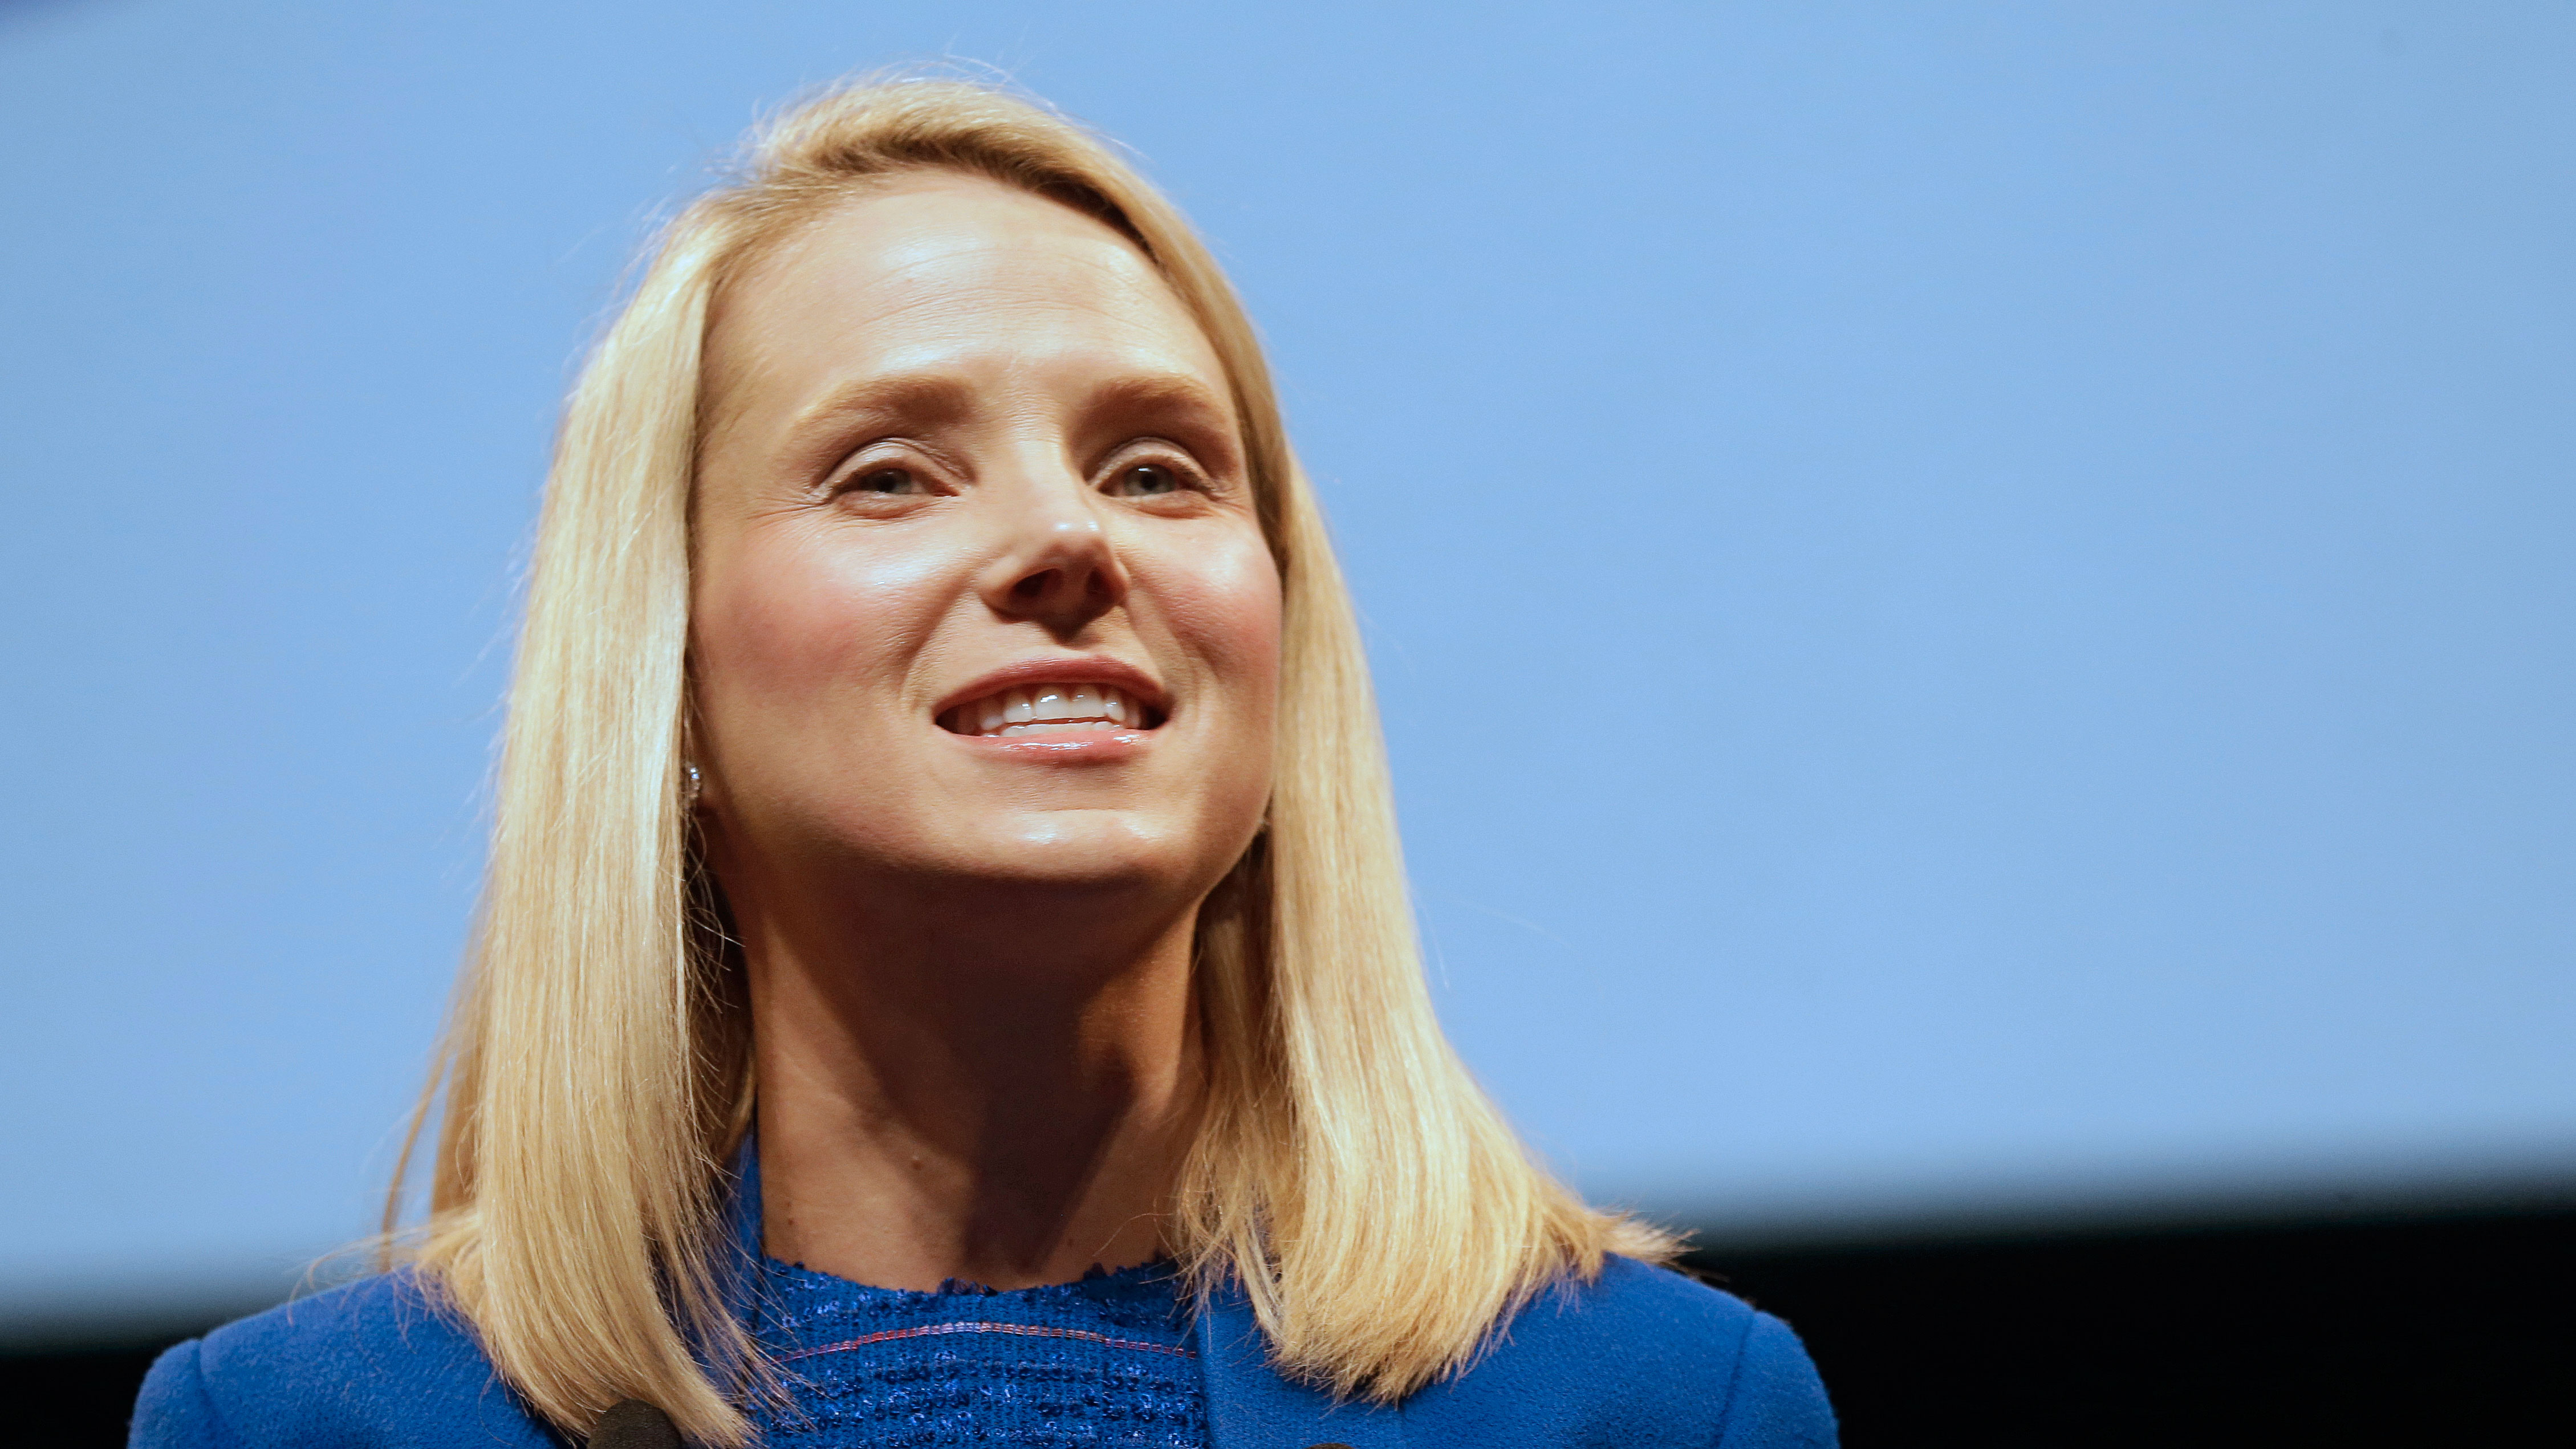 Marissa Mayer, CEO of Yahoo, attends the Cannes Lions 2014, 61st International Advertising Festival in Cannes, southern France, Tuesday, June 17, 2014. The Cannes Lions International Advertising Festival is a world's meeting place for professionals in the communications industry.(AP Photo/Lionel Cironneau)